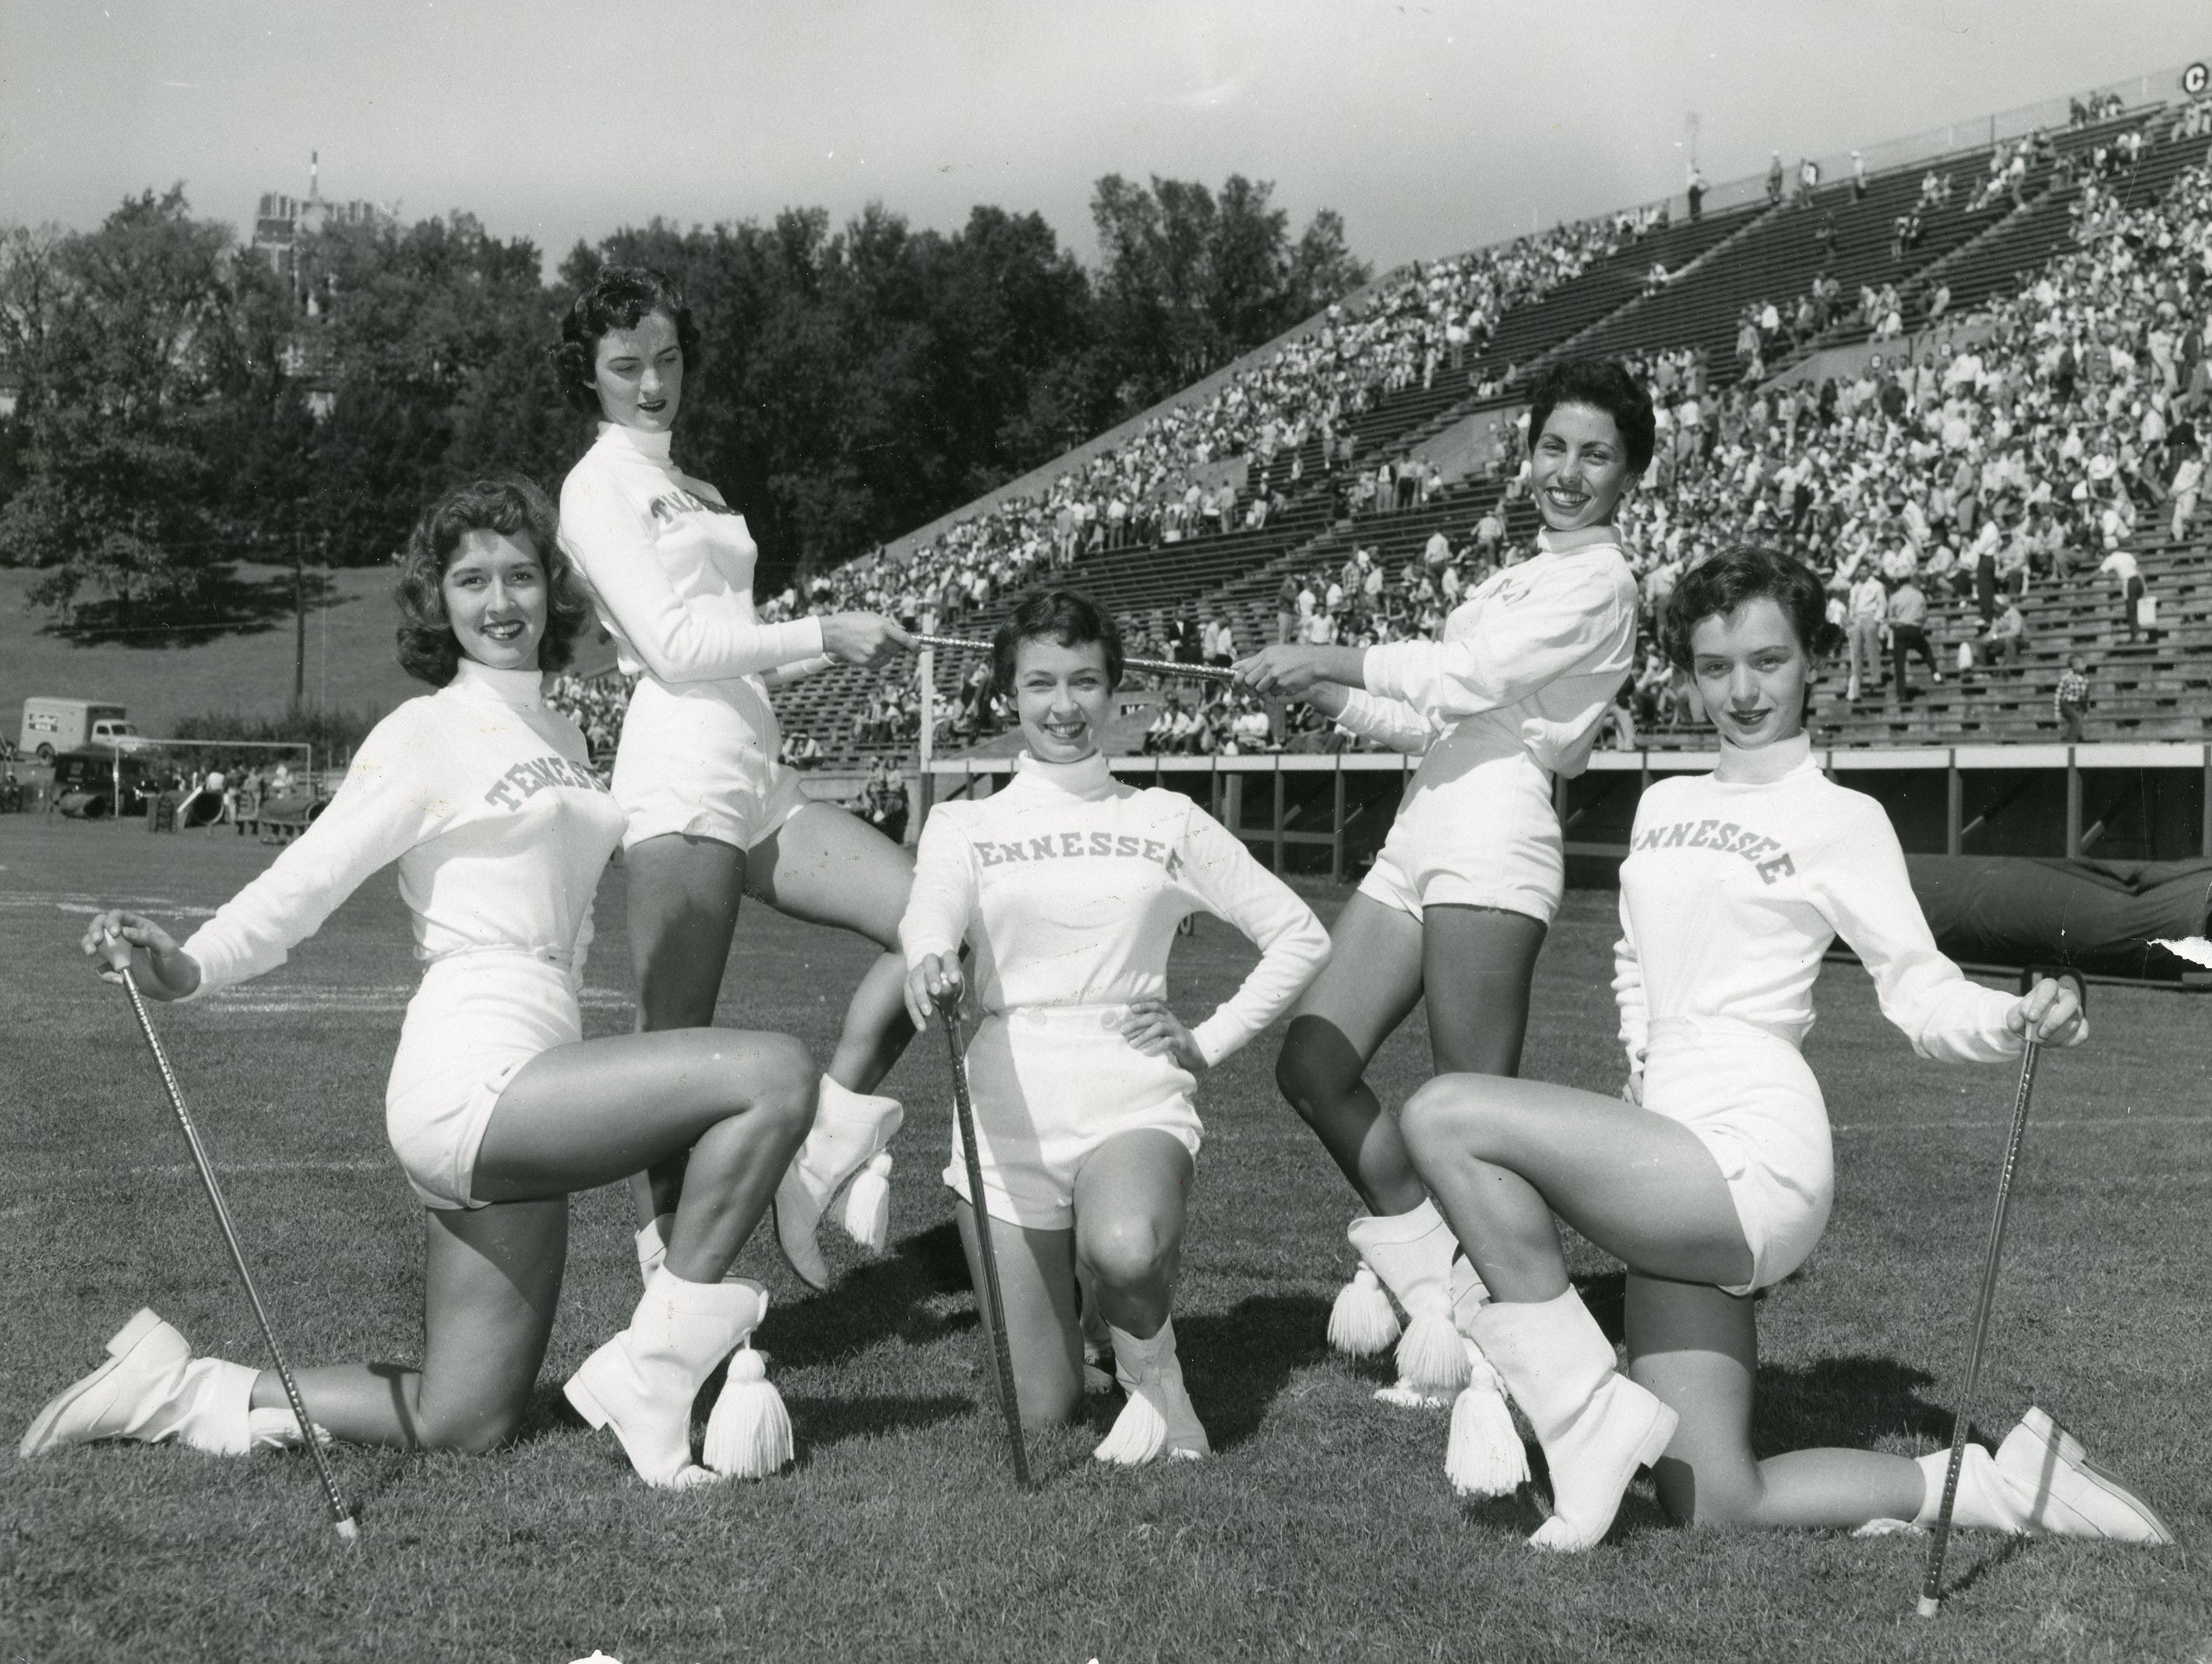 The 1955 UT majorettes included (front) Ann Dale Guinn, Mary Thomas, Lucy Hatmaker; (back) Carolyn Johnson and Sadie Harder.